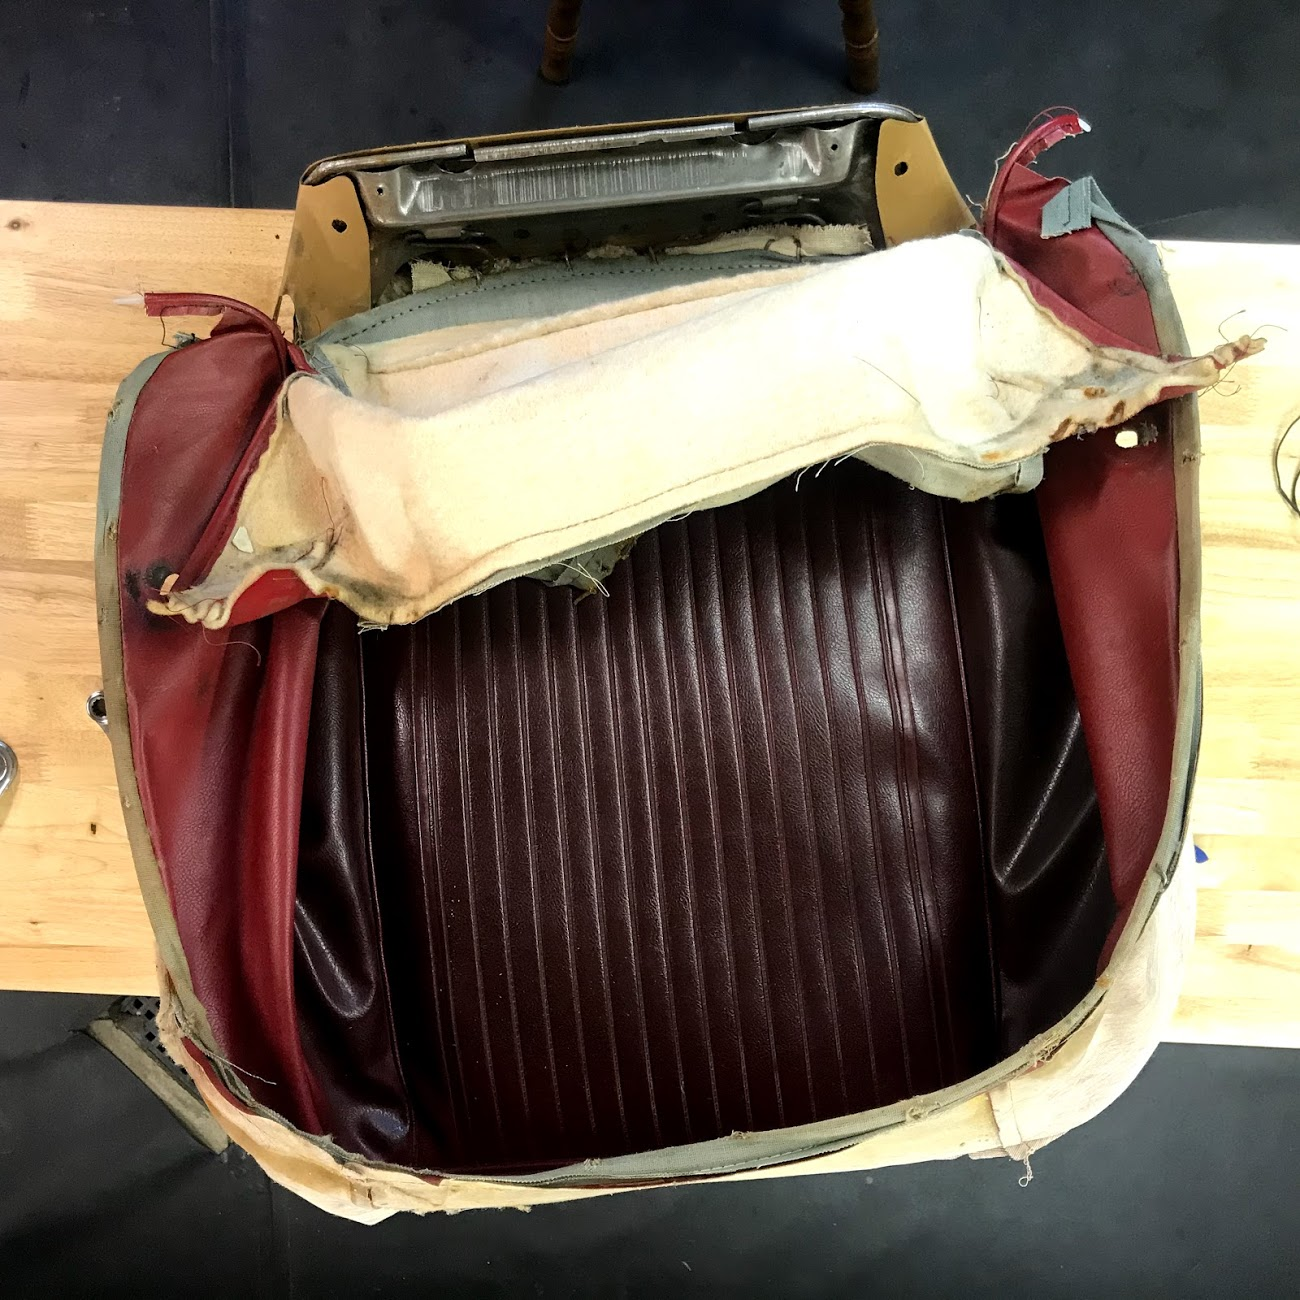 An example of how dark the bright red vinyl had faded. It might have been possible to clean this seat bottom, but with the other damage it made sense to replace it.